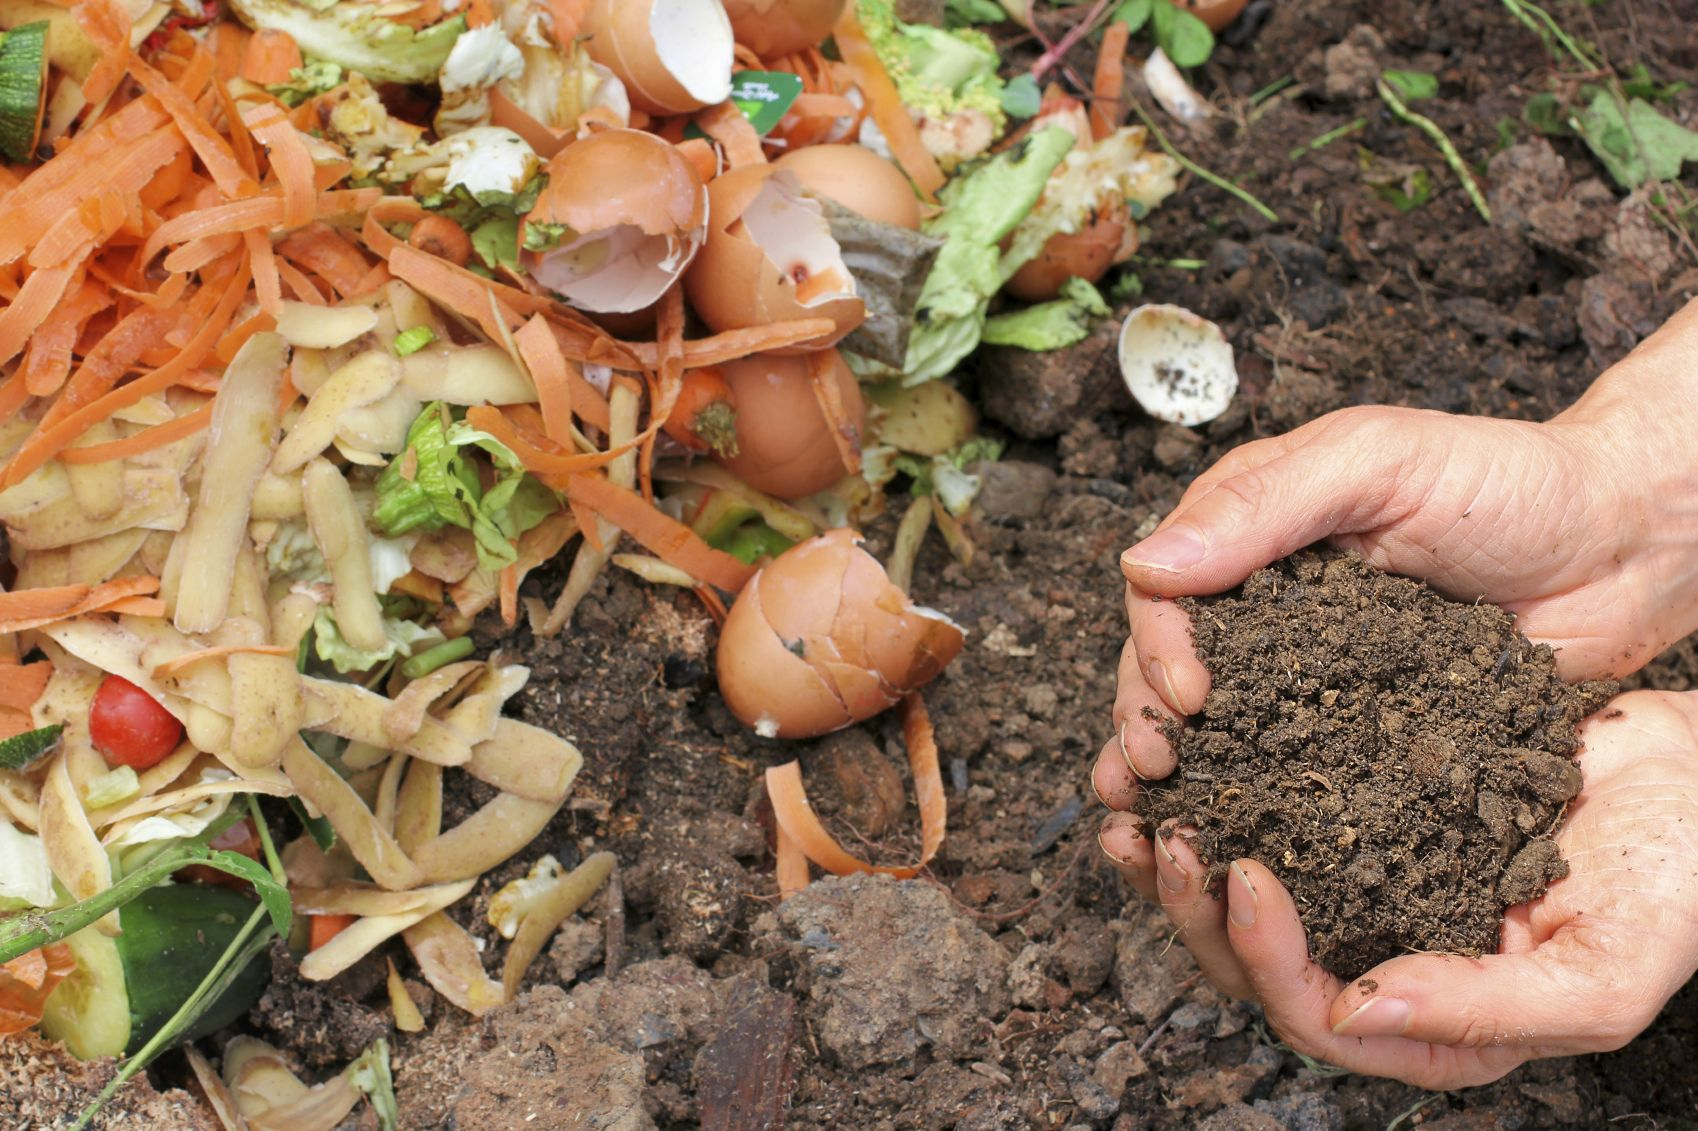 Composting How To Tips On Starting A Compost Pile At Home